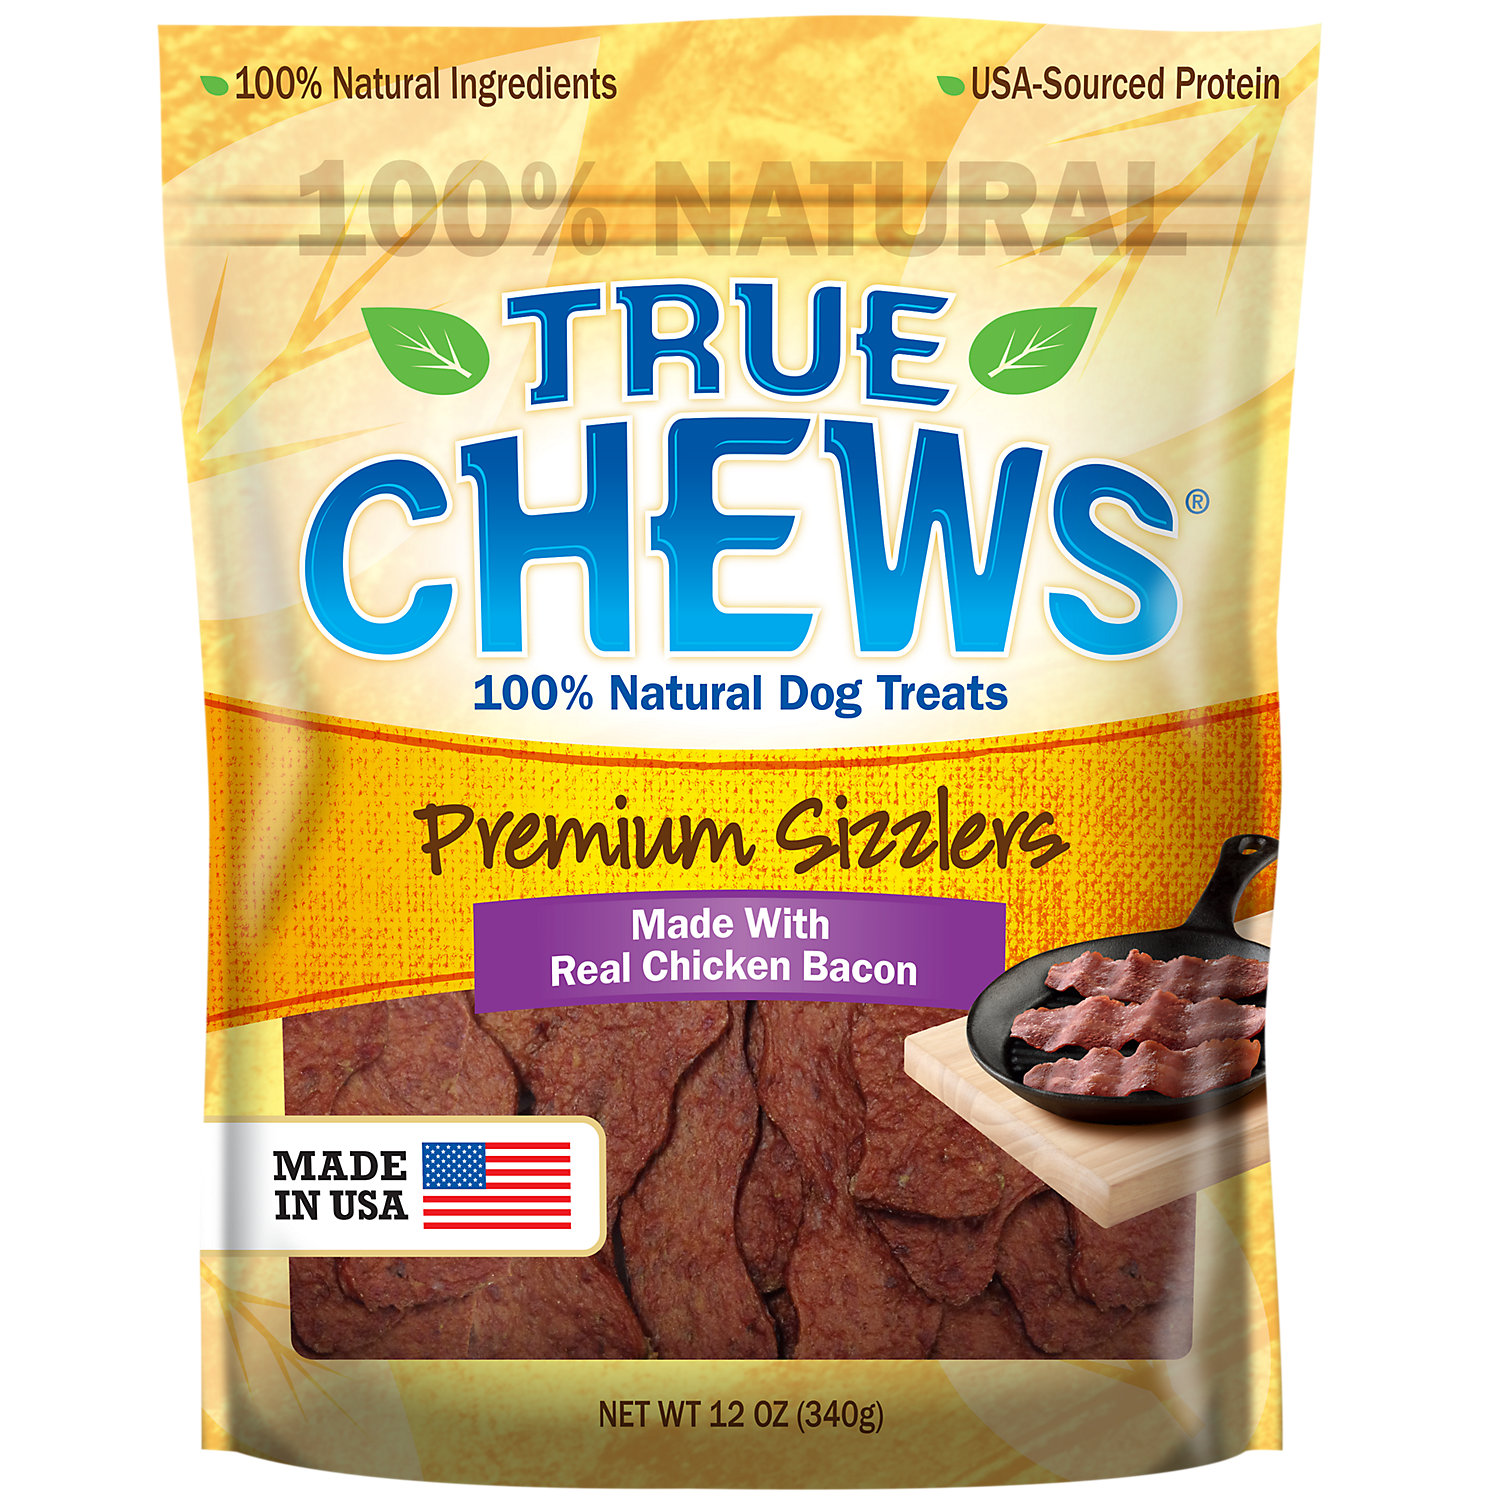 True Chews Premium Sizzlers Made With Real Chicken Bacon Dog Treats 12 Oz.